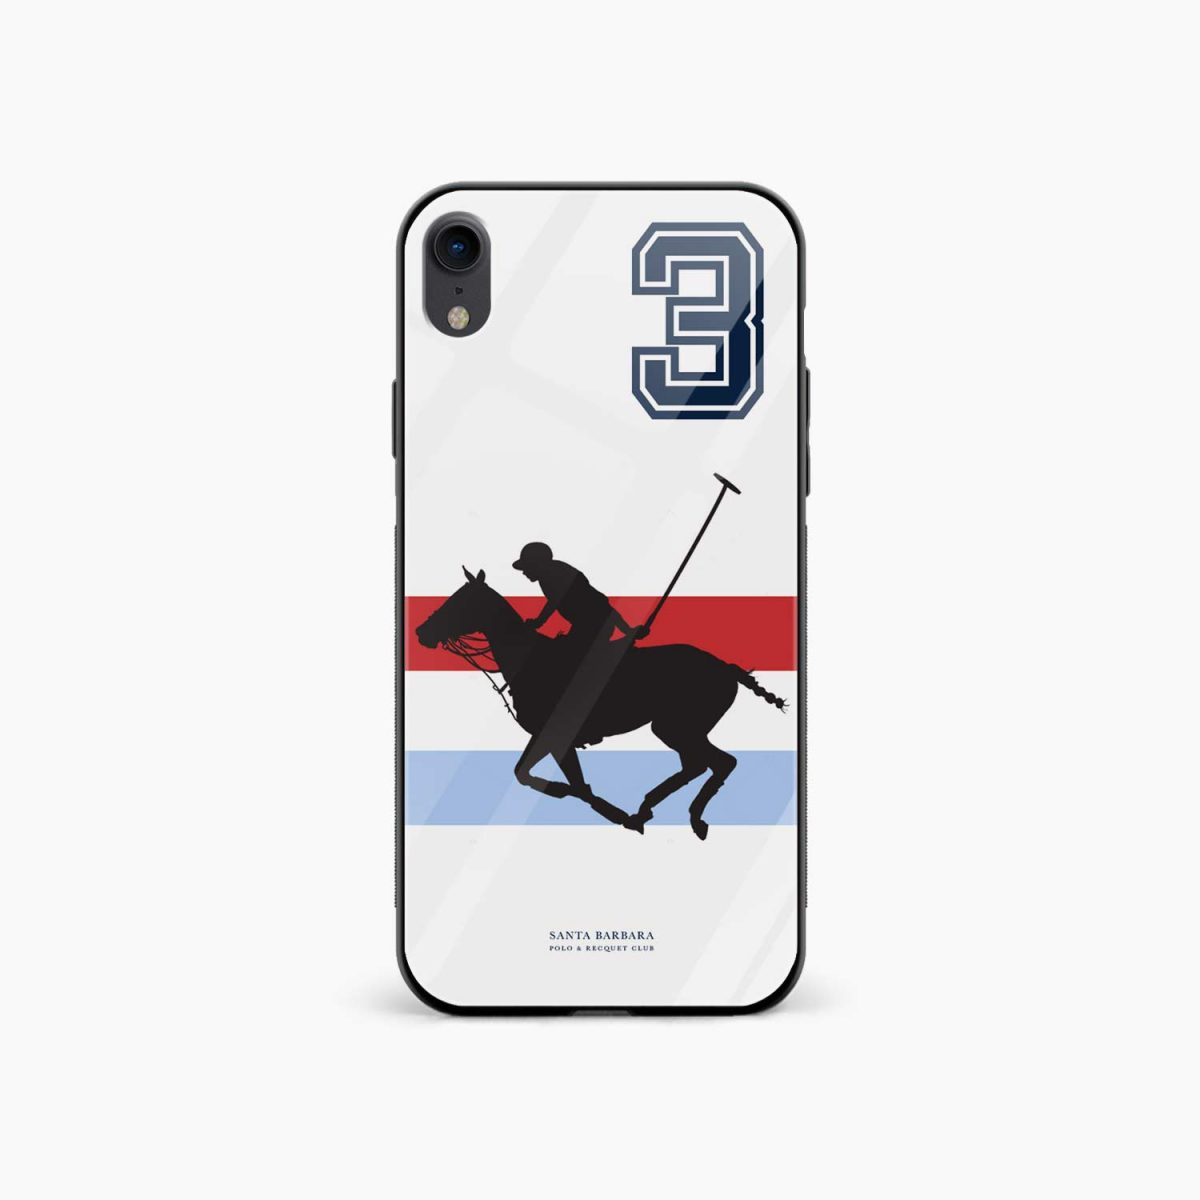 santa barbara polo apple iphone xr back cover front view